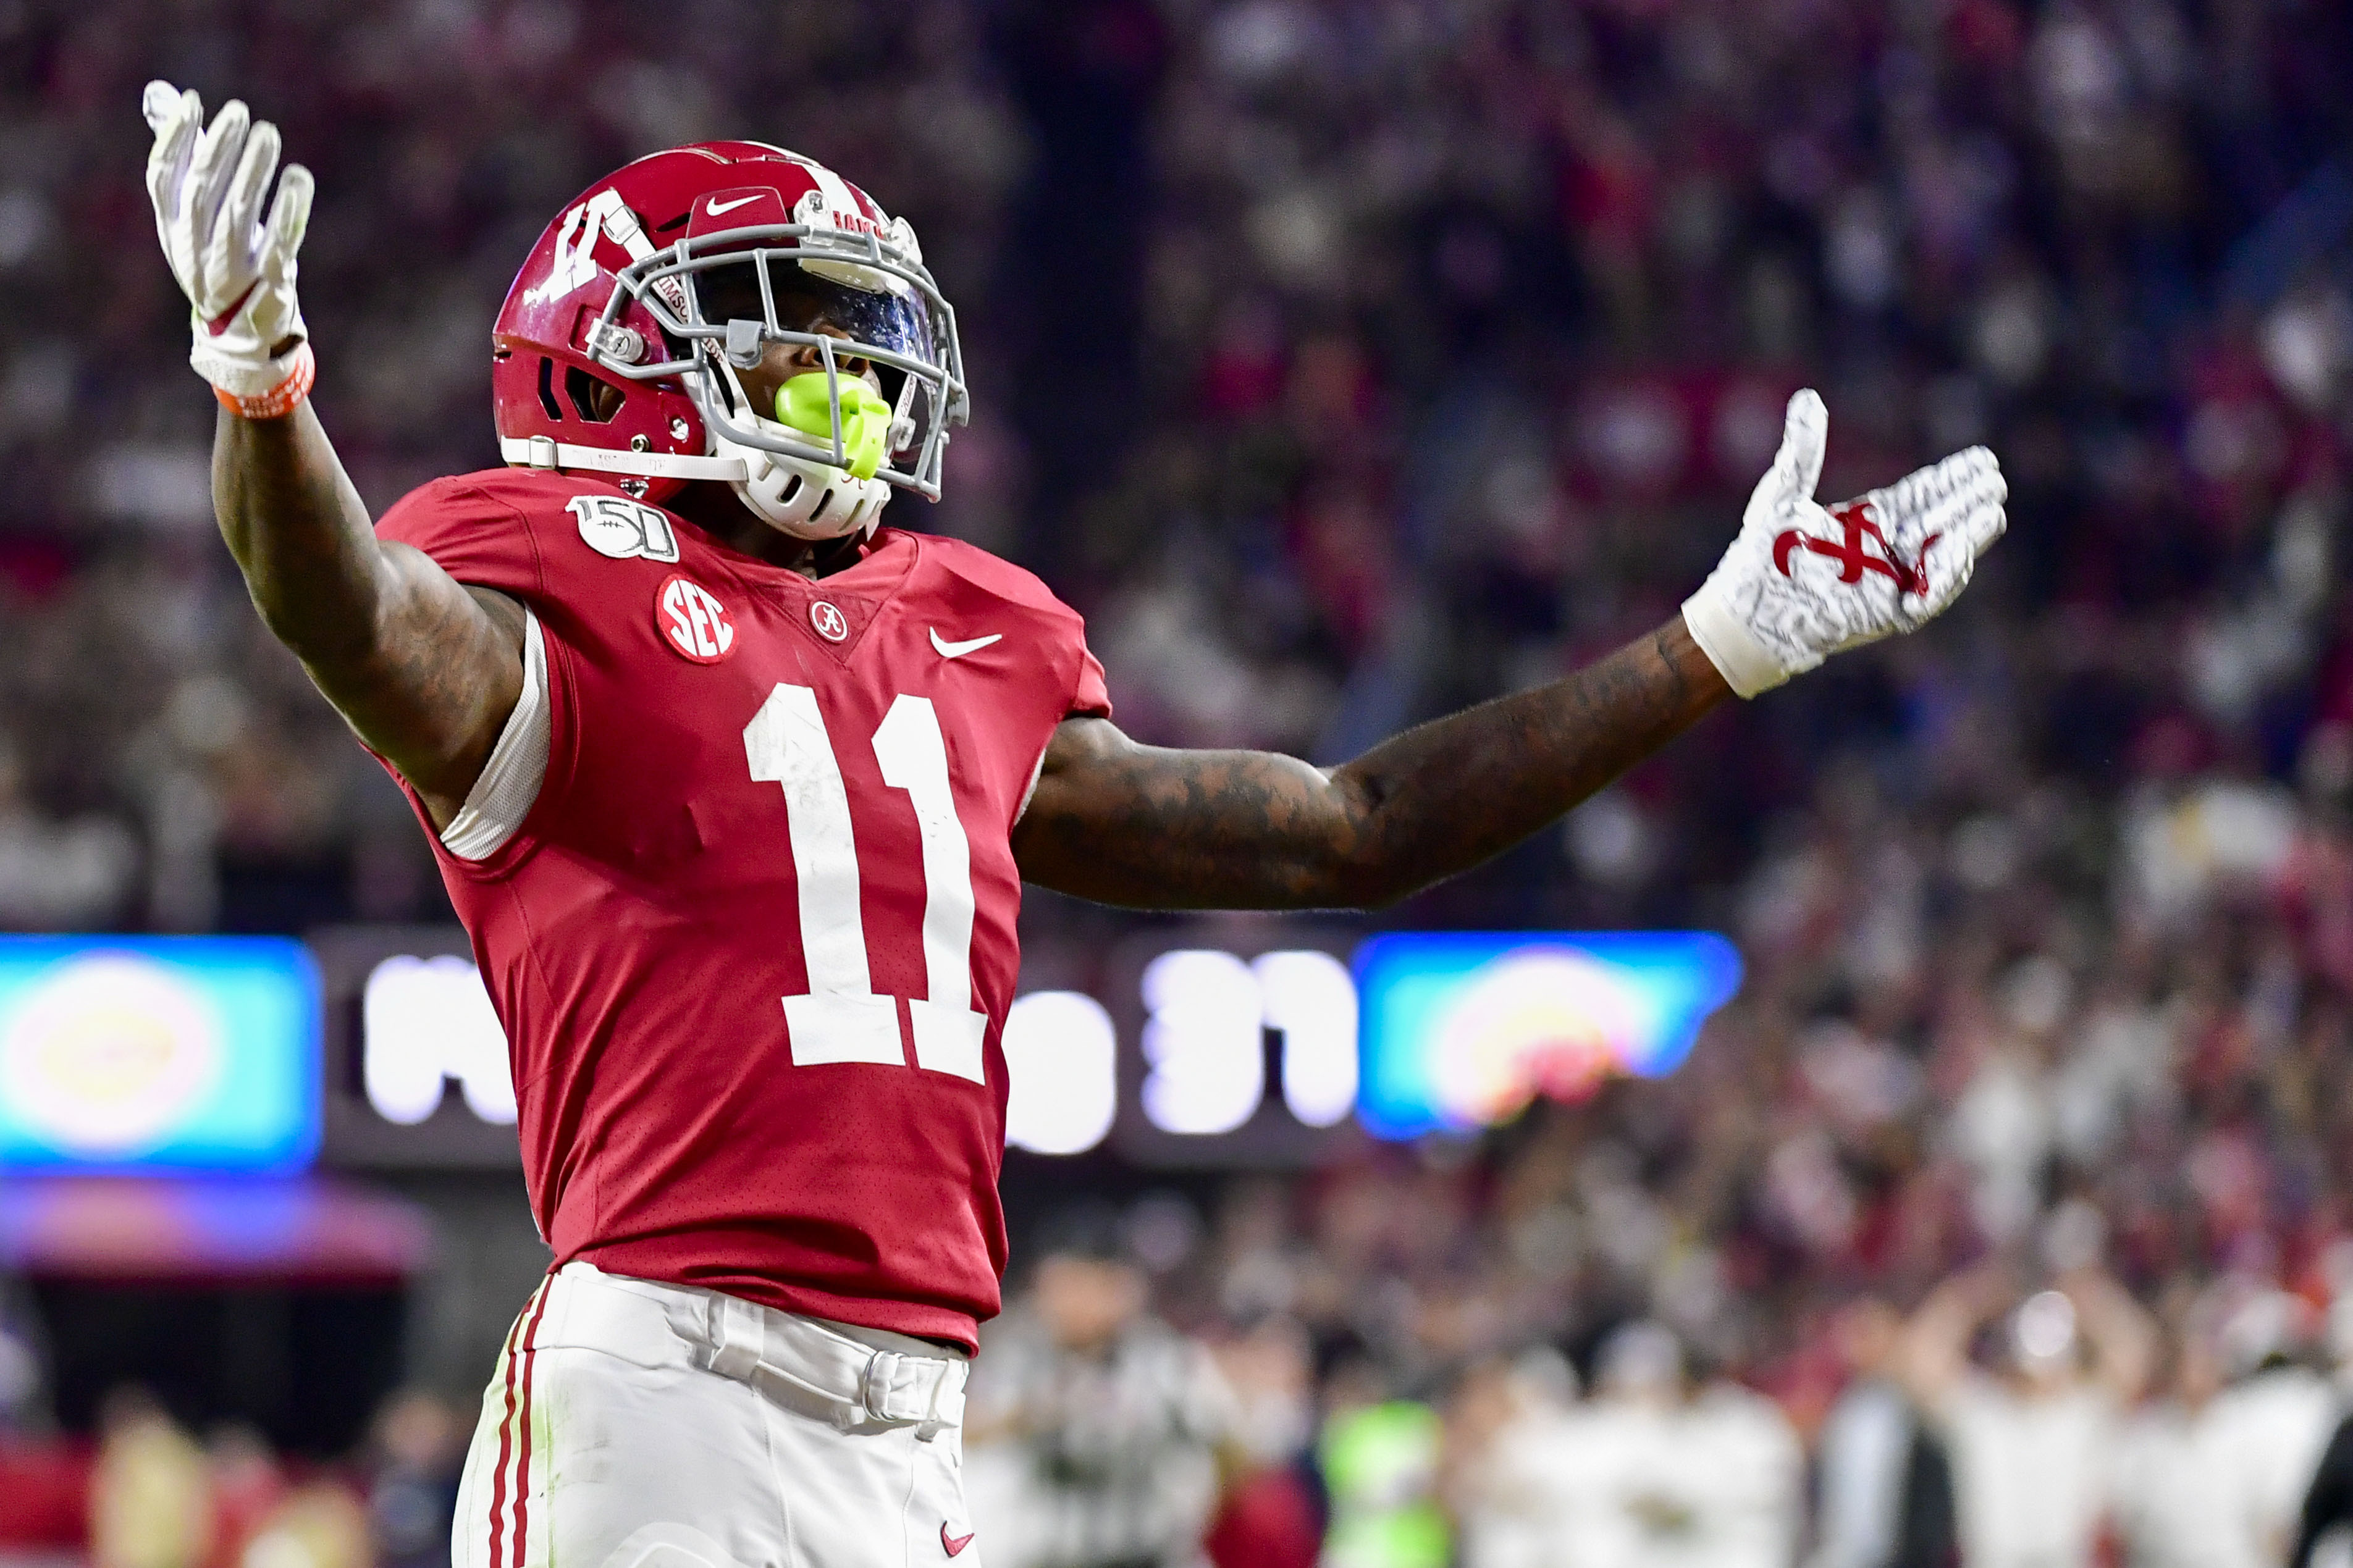 NFL Draft 2020: Buffalo Bills add WR 'who might be the fastest player in the entire class' in Mel Kiper's latest mock